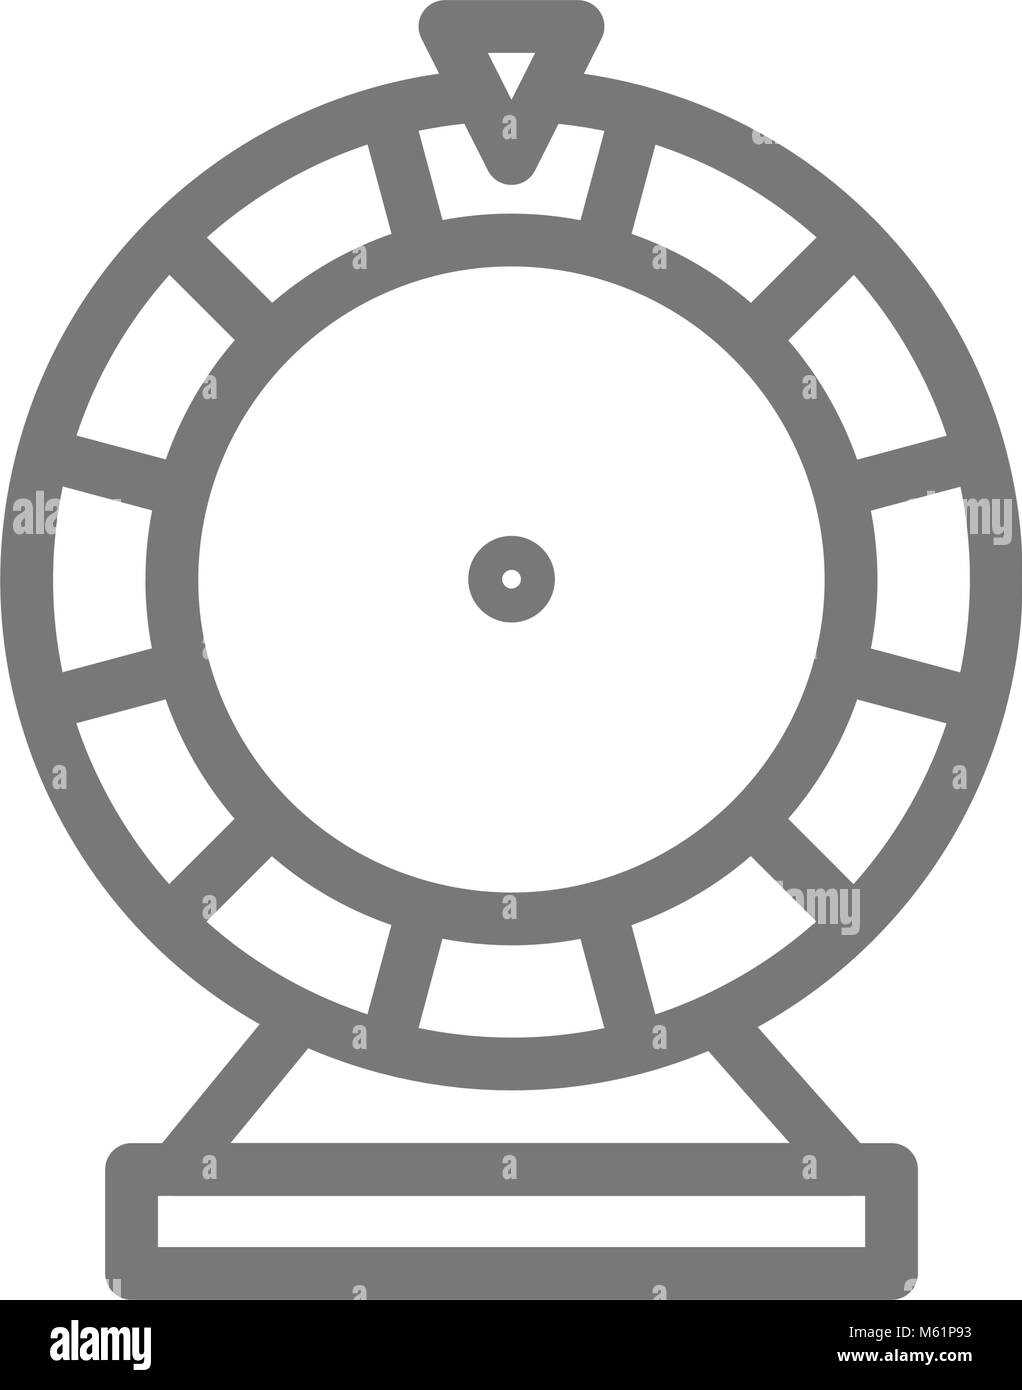 Simple wheel of fortune line icon. Symbol and sign vector illustration design. Isolated on white background - Stock Vector